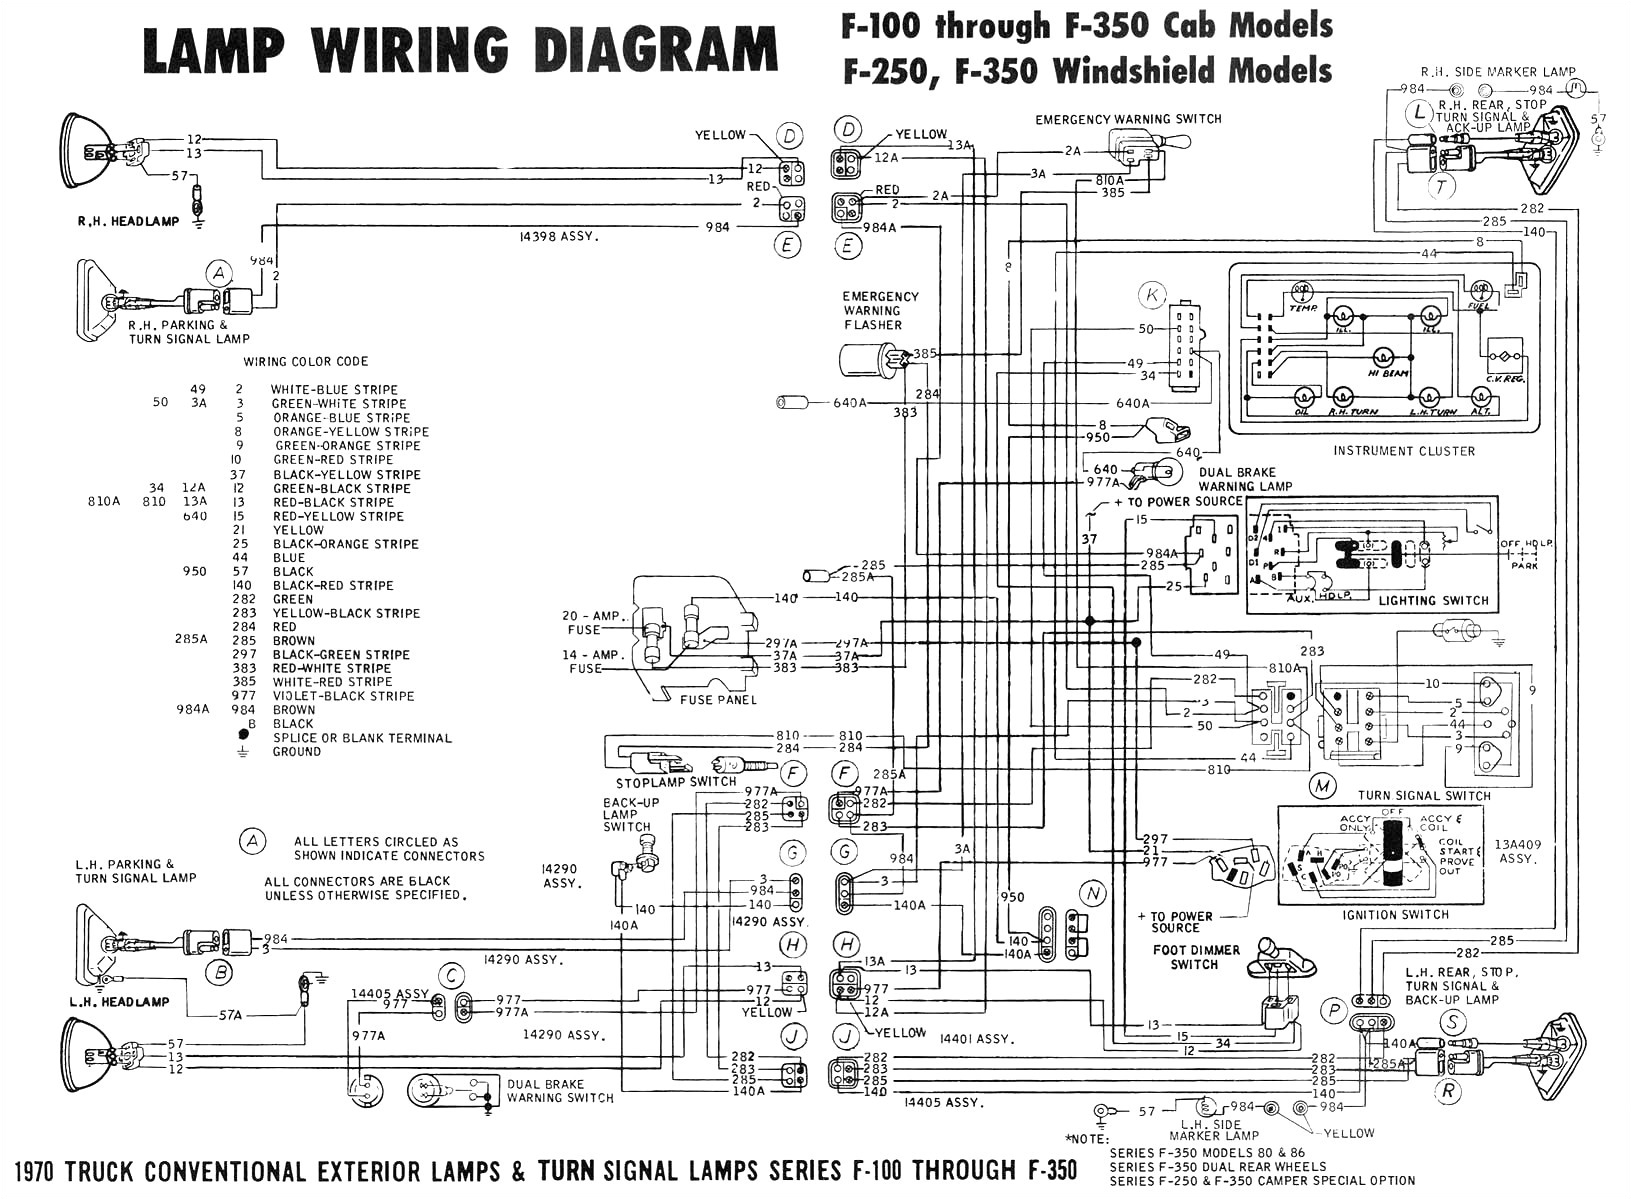 wiring diagram electrical system troubleshooting diagram schematic wiring diagrams and schematics with graded quiz troubleshooting heat